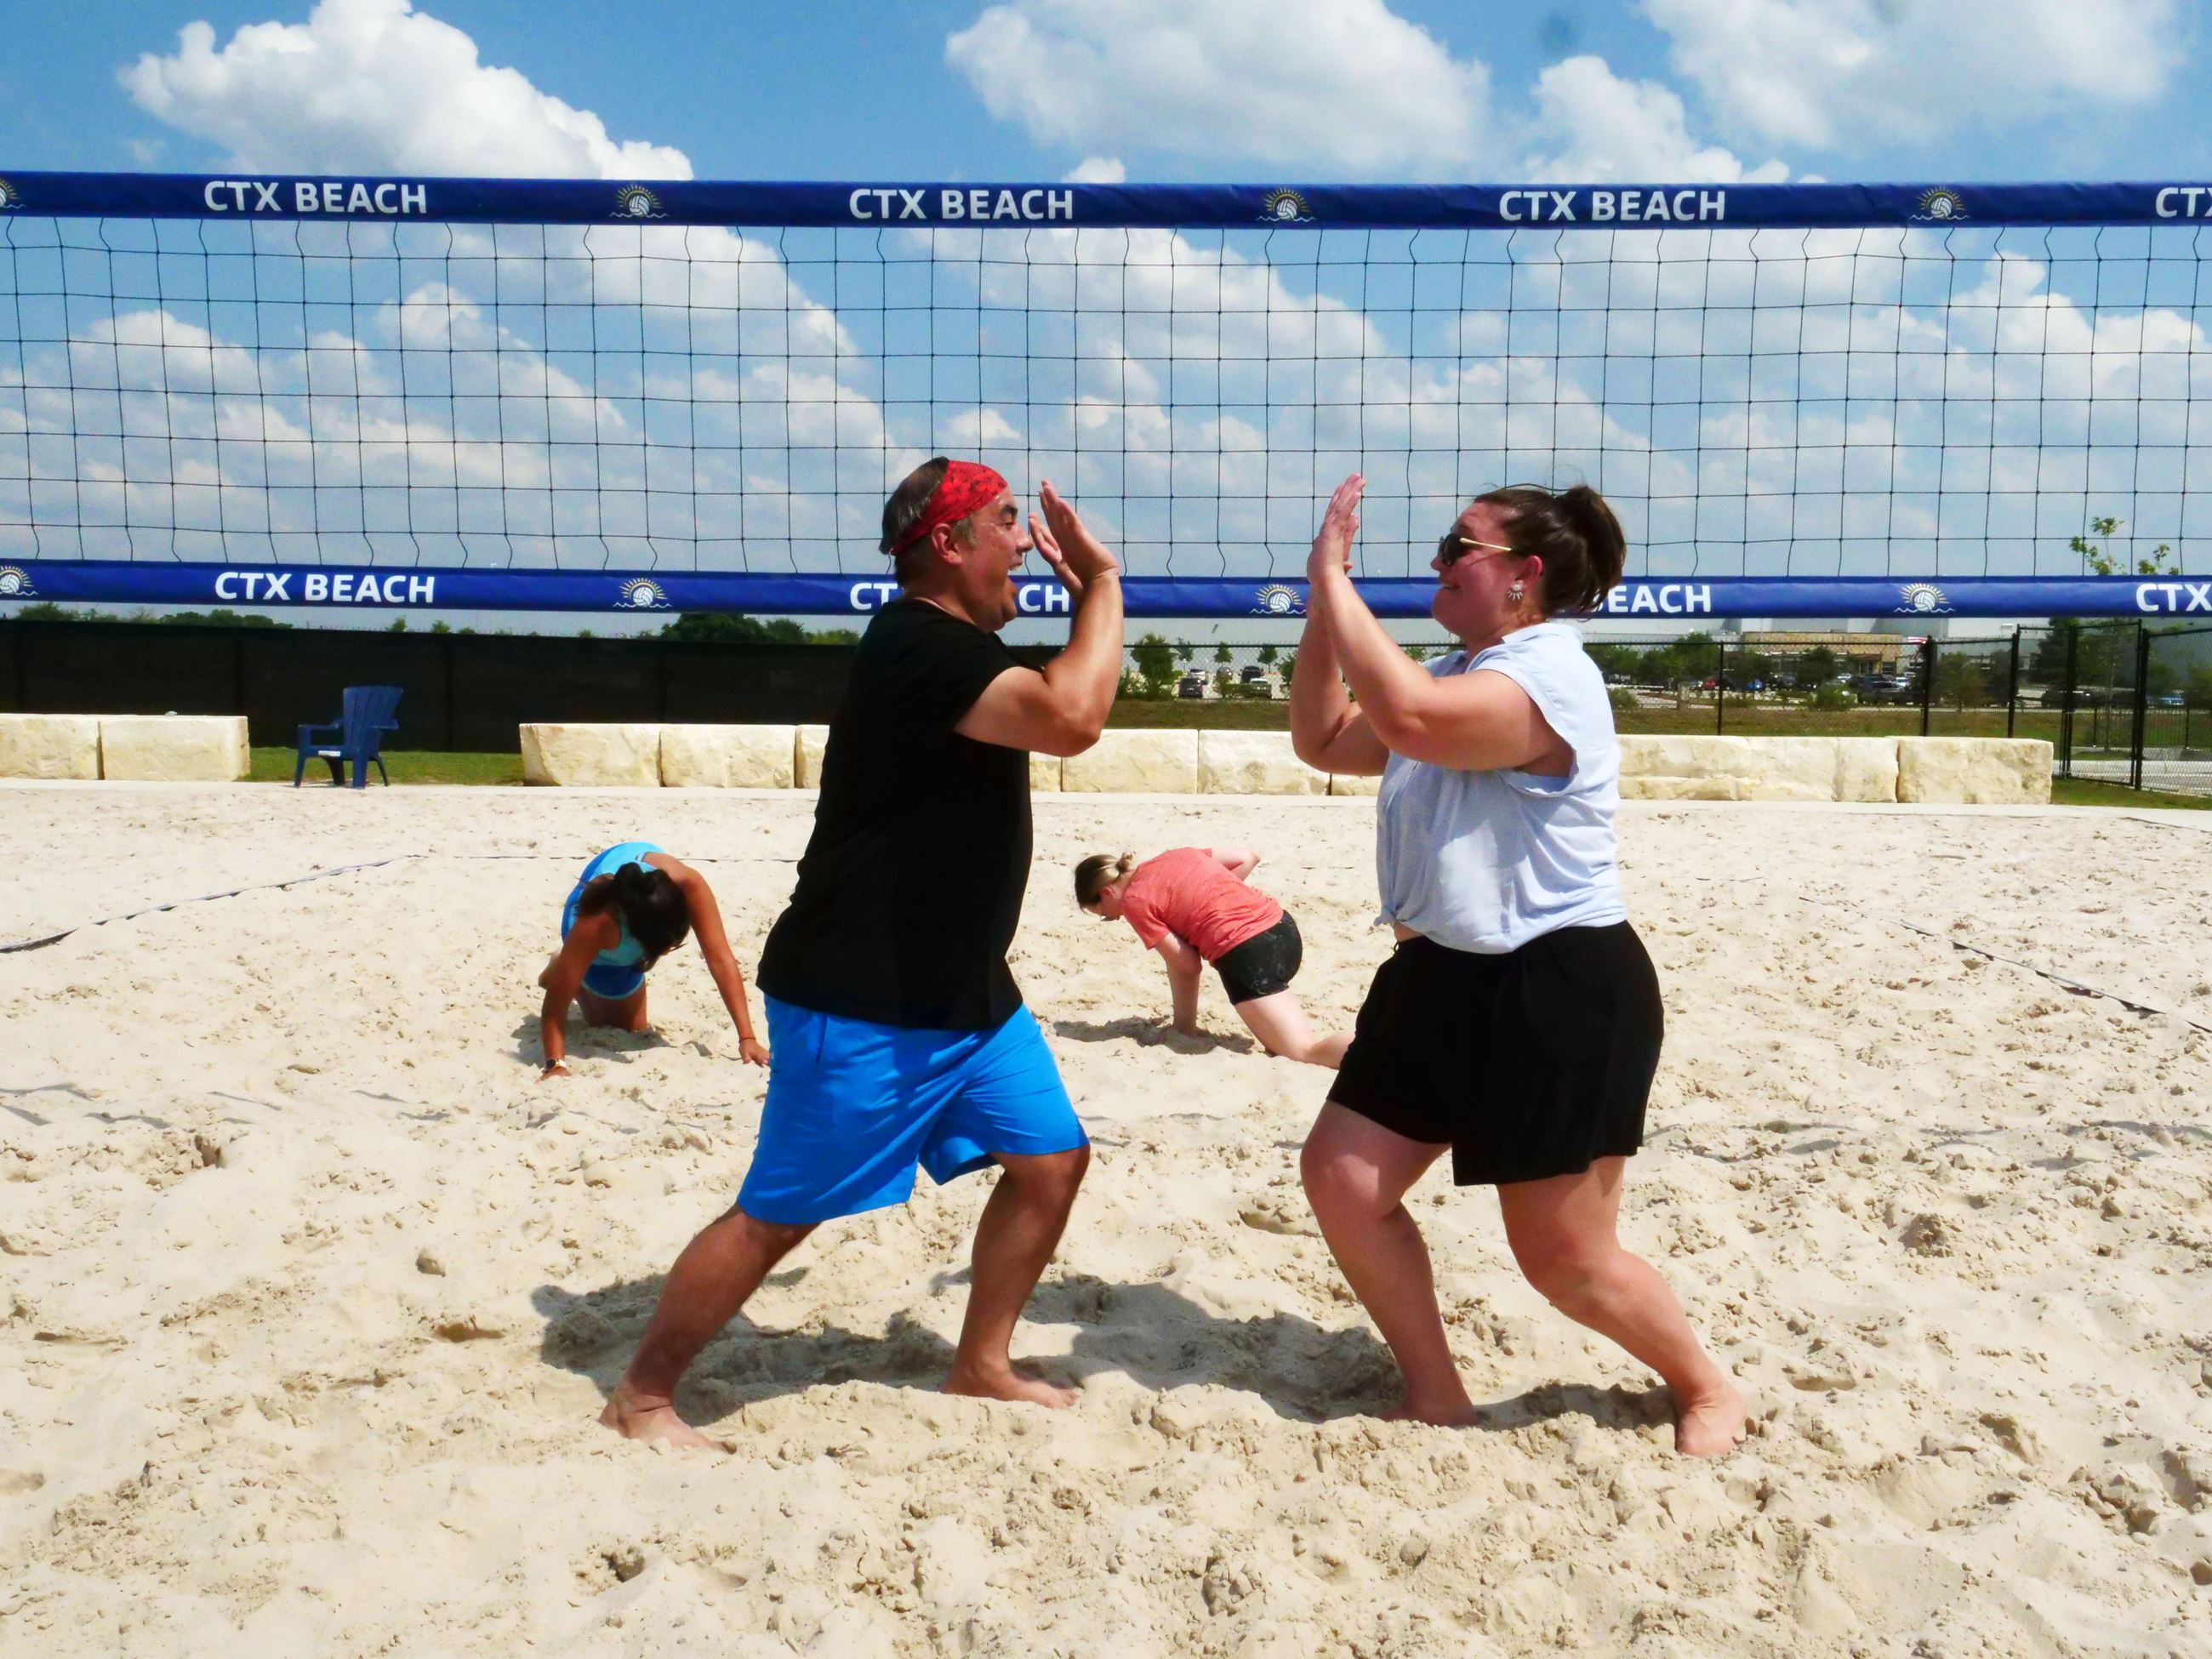 Two players high five after a score in the sand volleyball courts